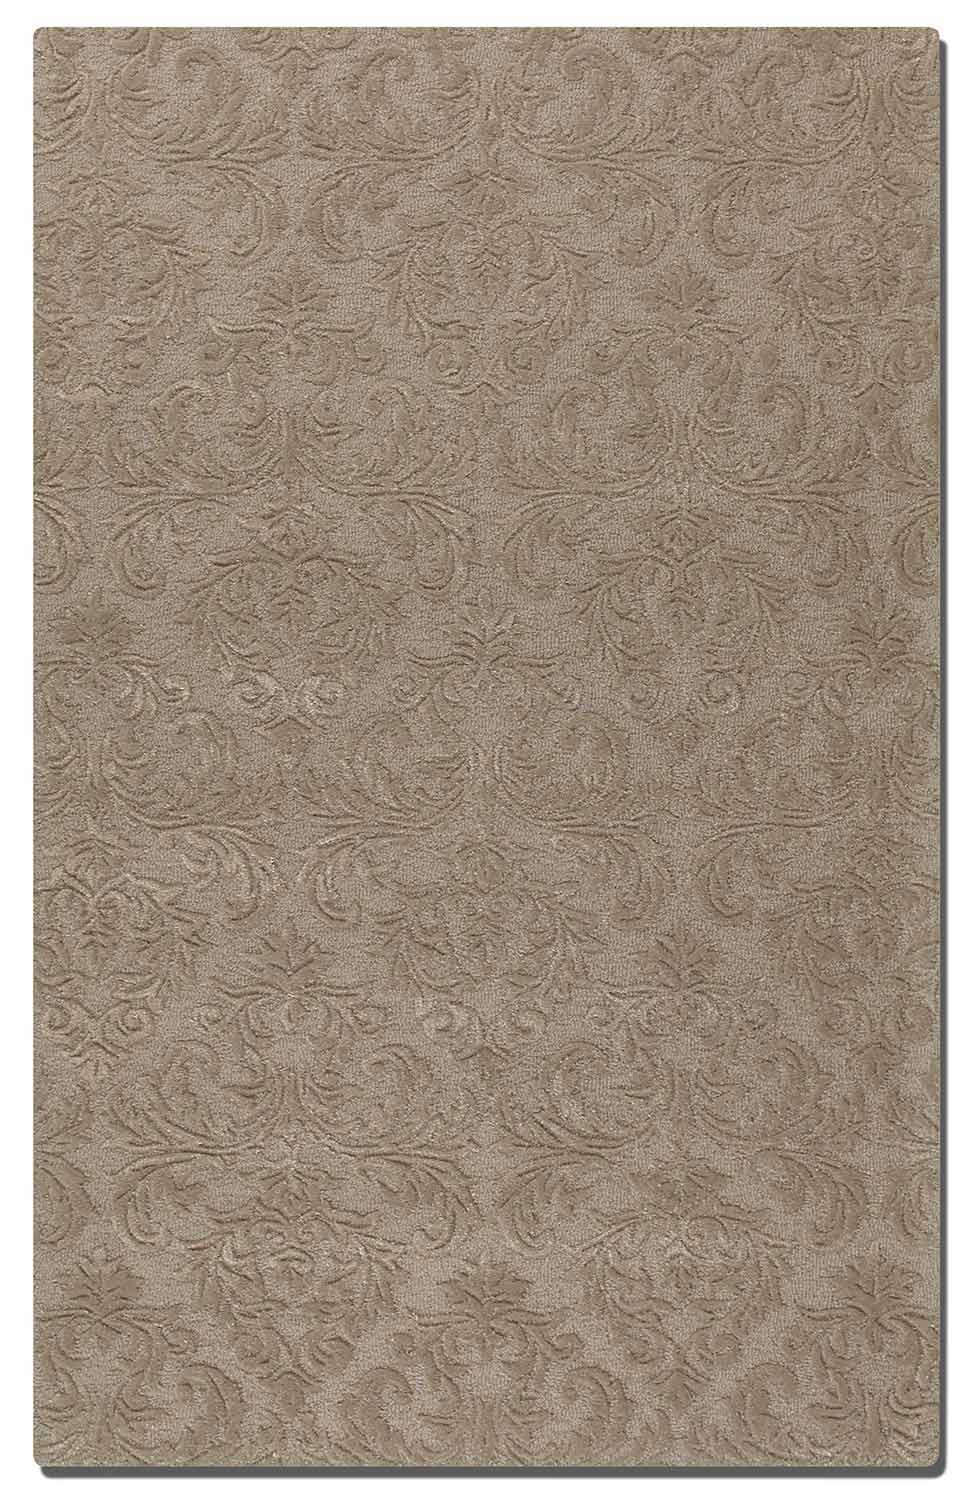 Uttermost St. Petersburg Gray Rugs